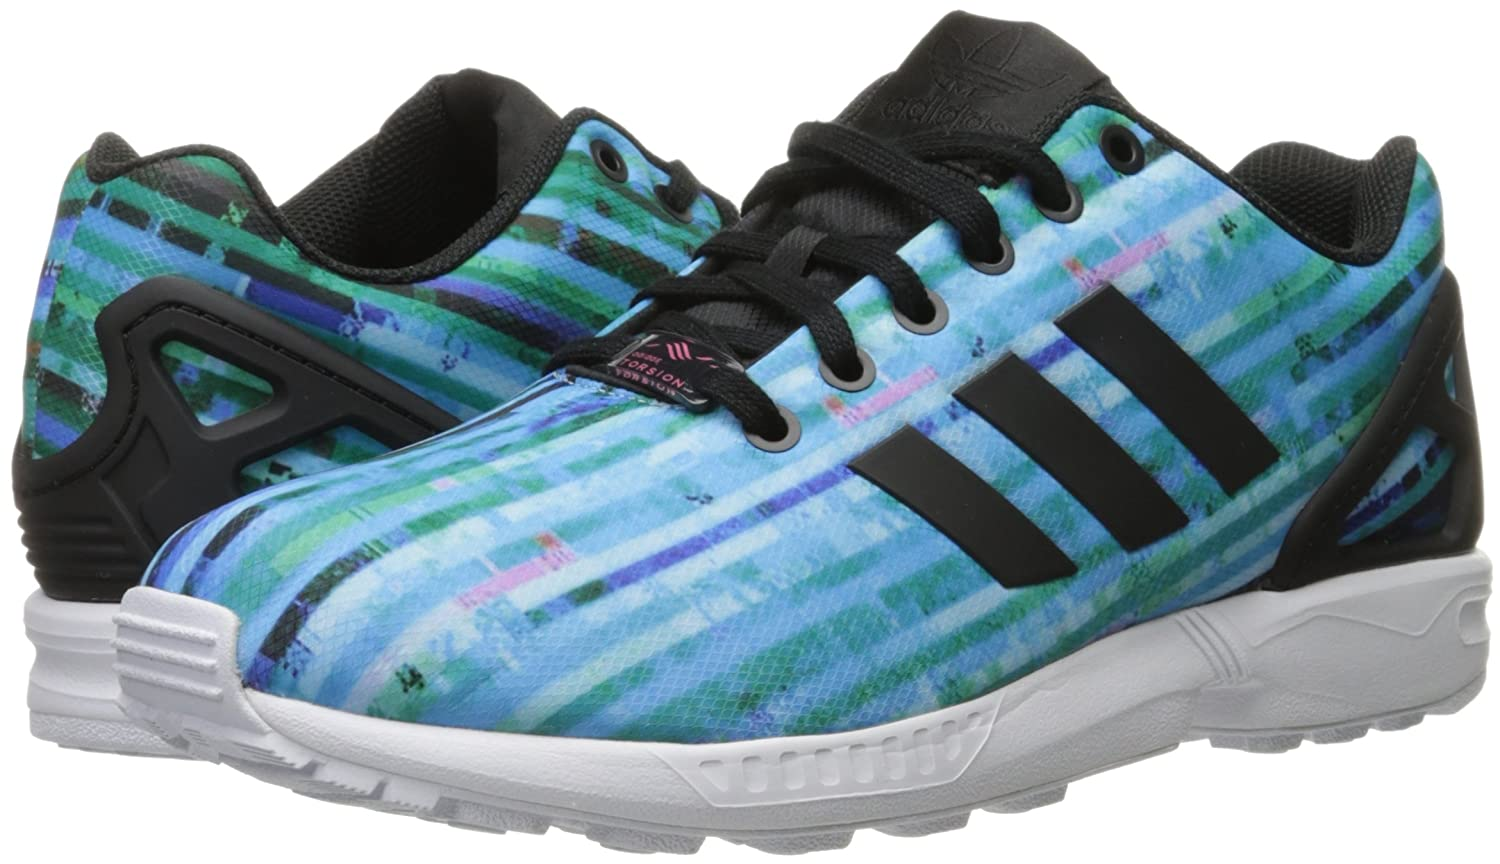 adidas Originals 10.5 Men's ZX Flux Fashion Sneaker B01FY6OKZU 10.5 Originals D(M) US|White/White/Neon Pink 882378